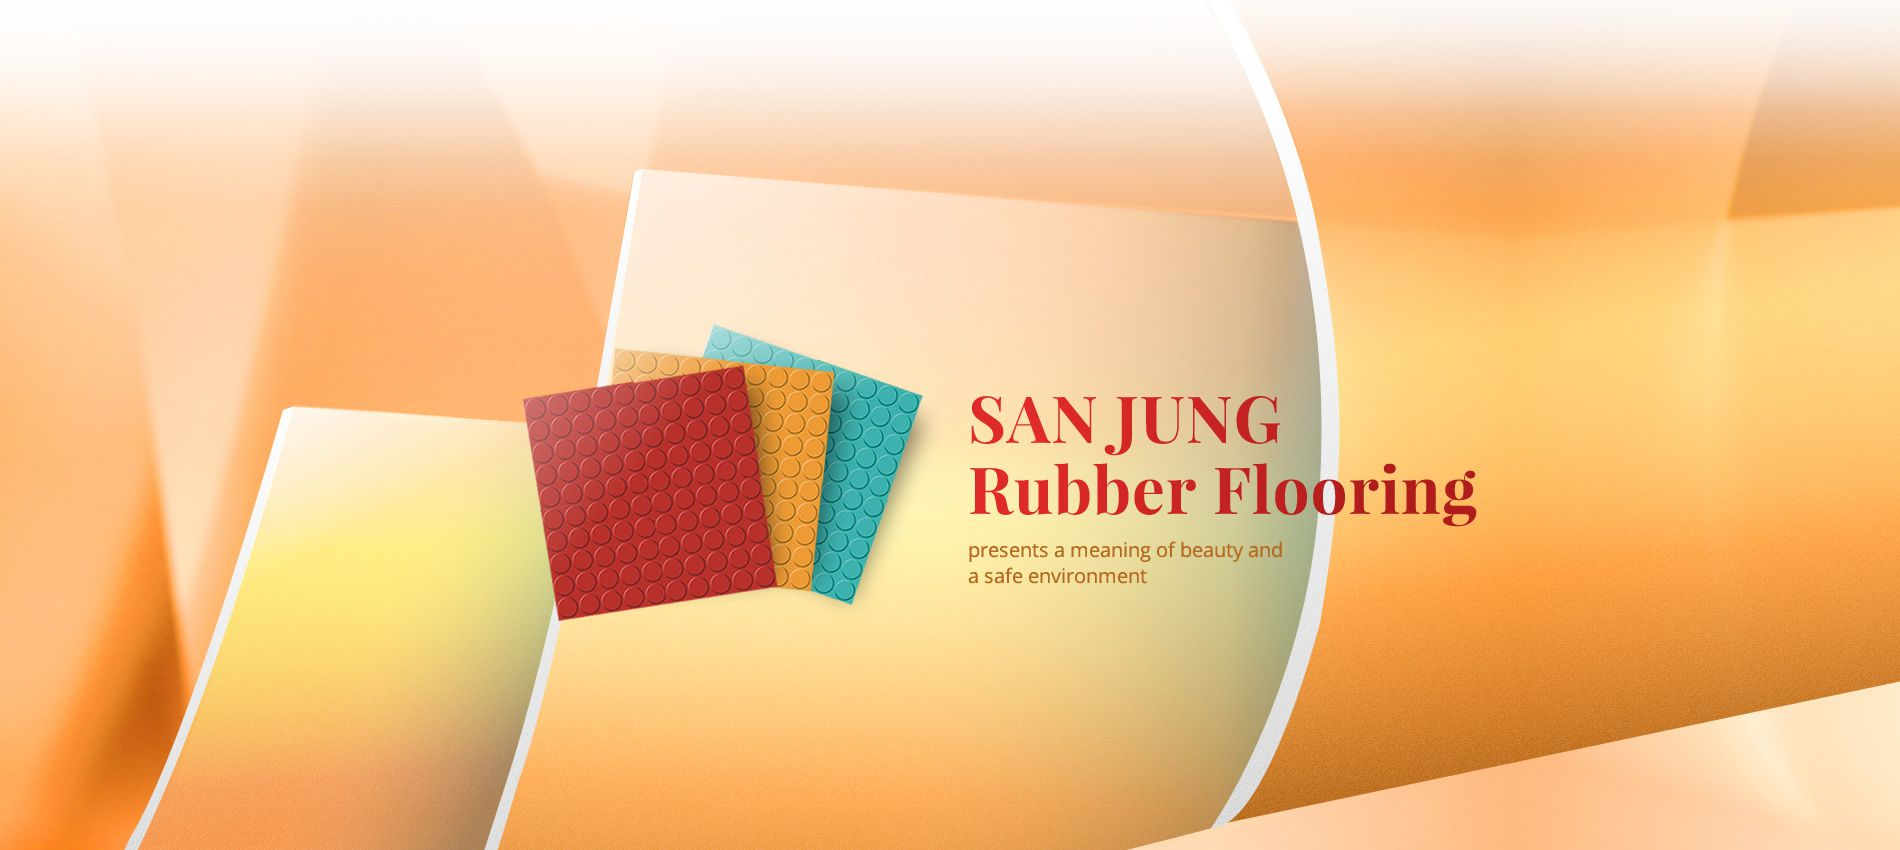 SAN JUNG Rubber Flooring